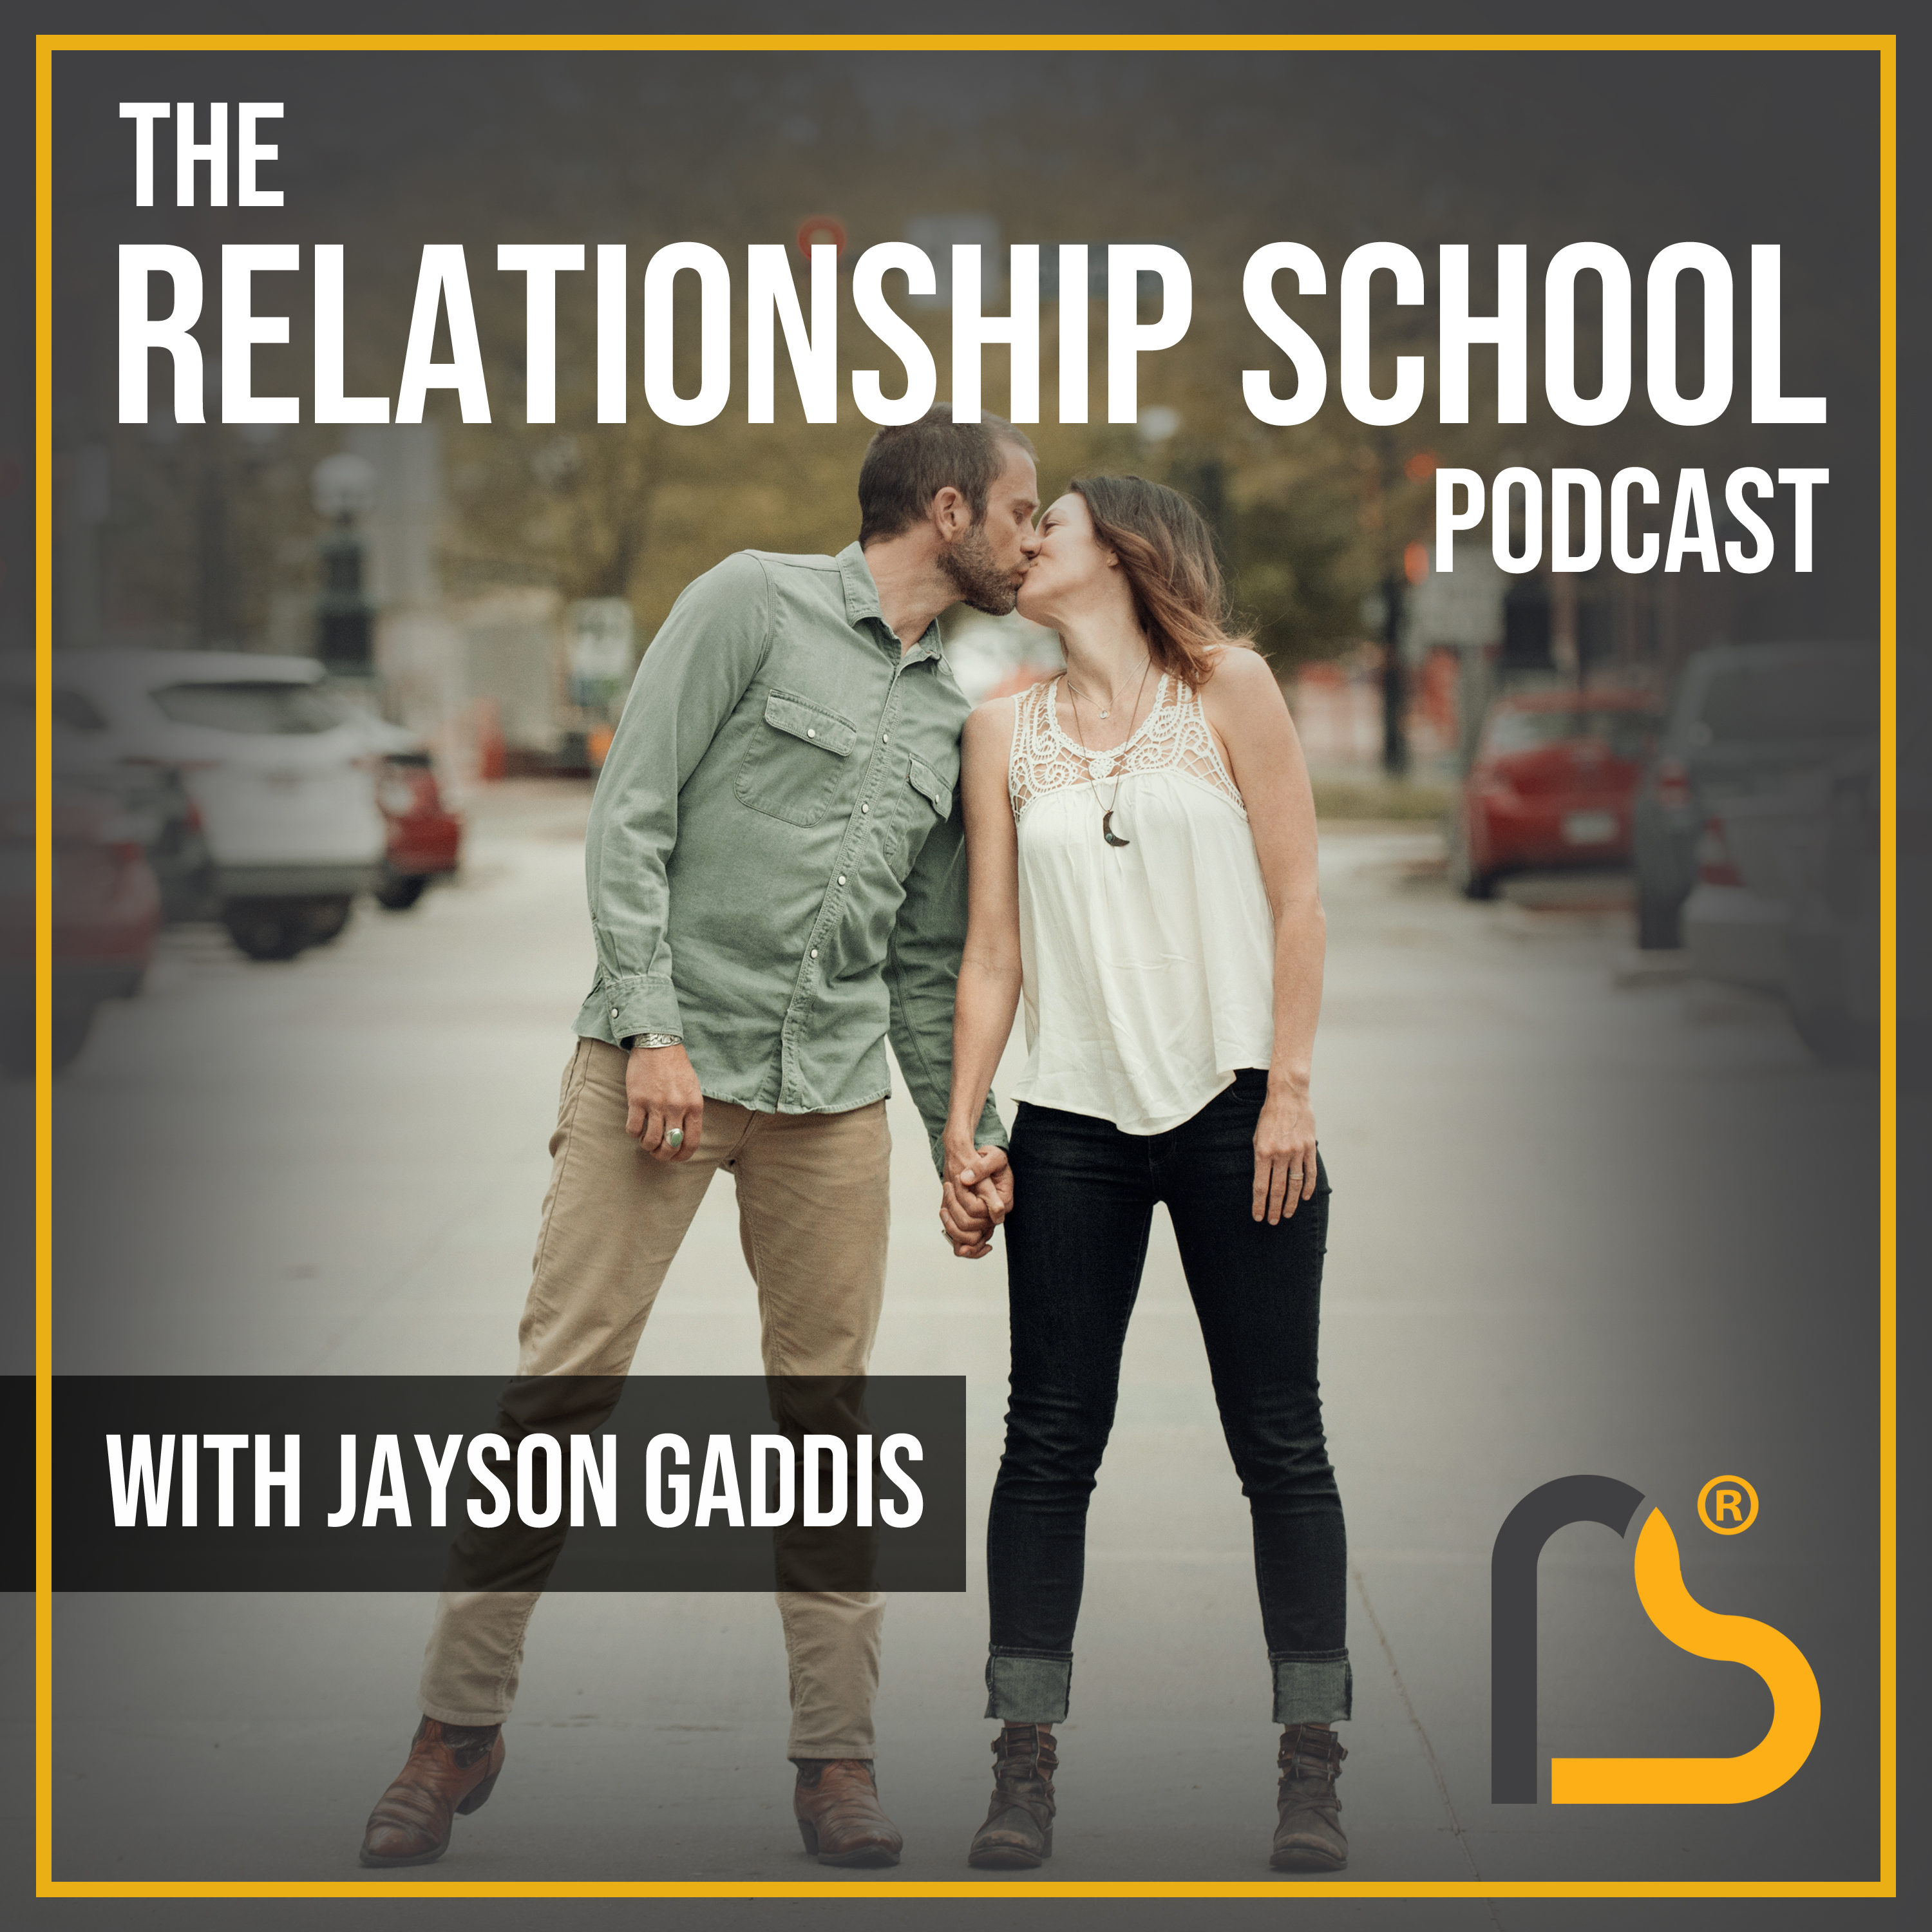 The Relationship School Podcast - If You Are Thinking of Divorce - Relationship School Podcast EPISODE 265